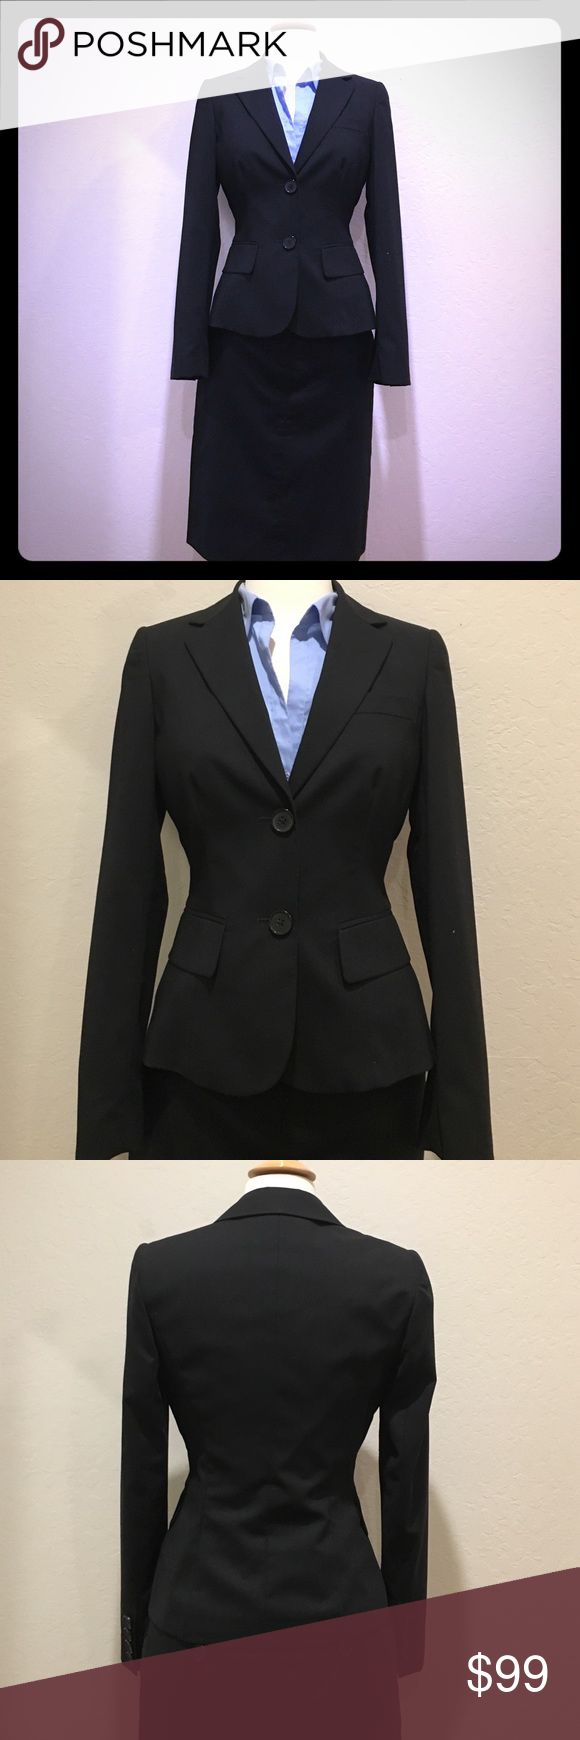 """United Color vest and skirt Wore once for my tough job interview. Dry clean. This set  was my lucky charm. I got the job and very happy . Unfortunately it doesn't fit me anymore. Lining. Vest shoulder across 15"""", bust across 17"""". Waist 13""""1/2. 22""""1/2 long. Skirt waist across 14""""1/2. Bottom 17""""1/2. 21"""" long United Colors Of Benetton Jackets & Coats Vests"""